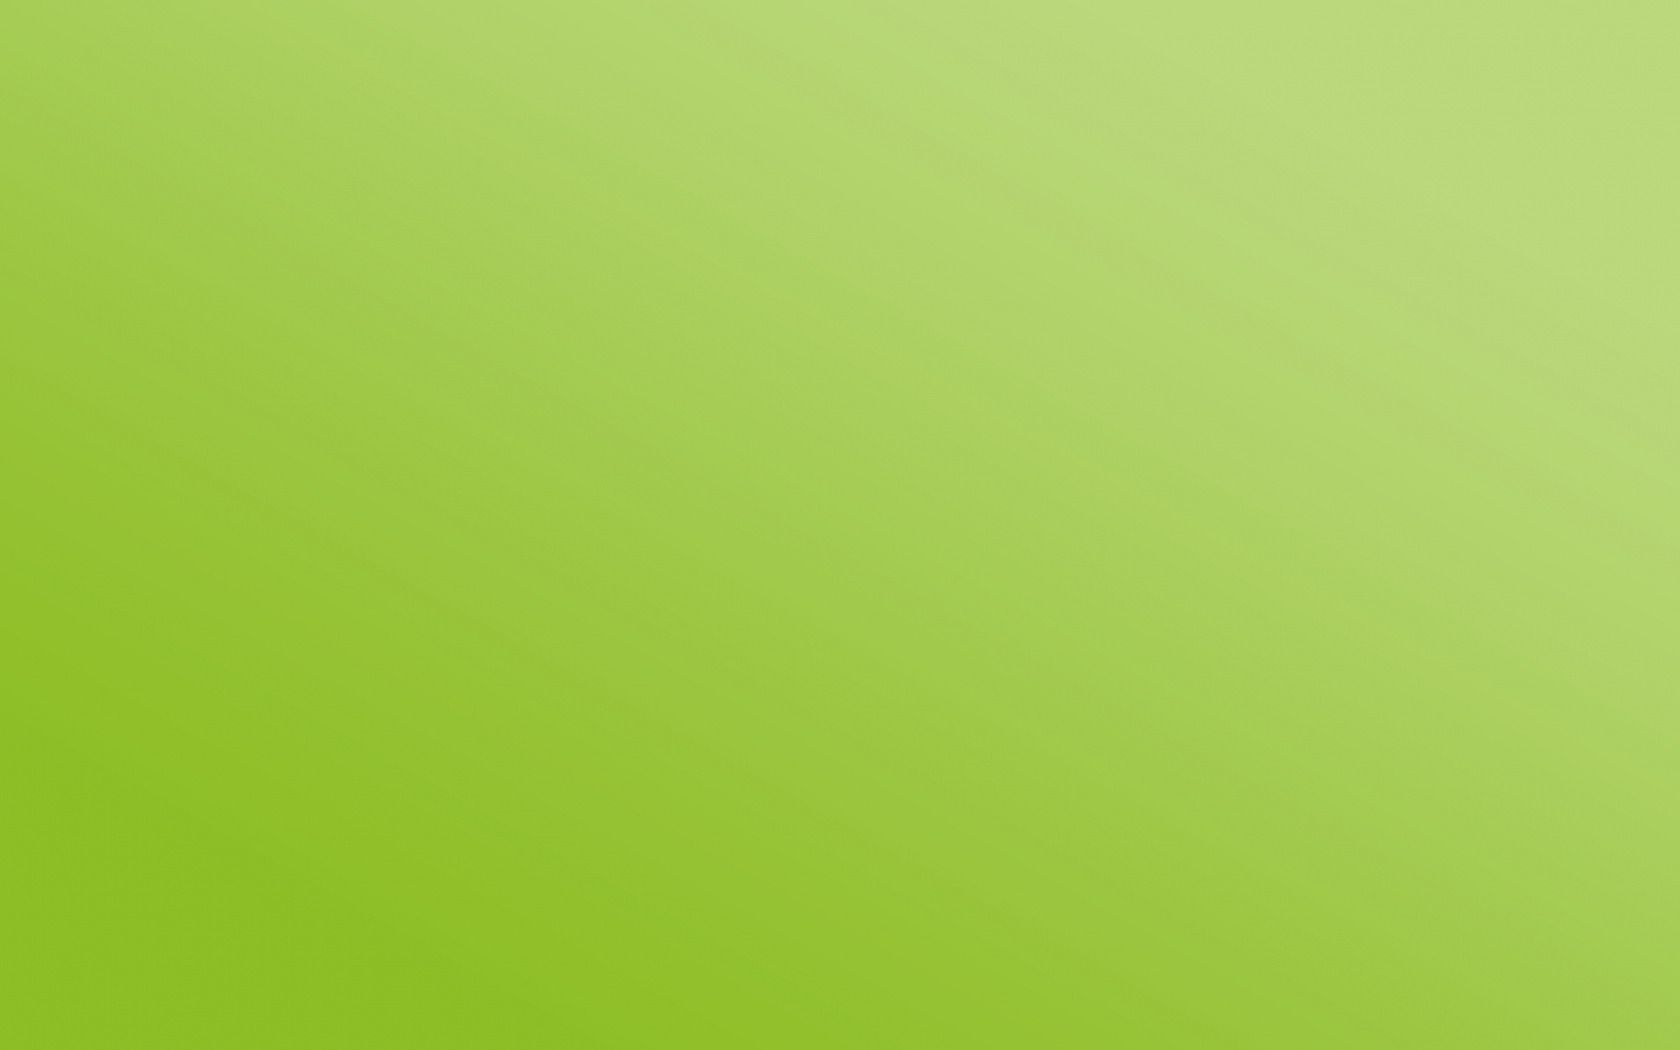 Light Green Background 31850 1680x1050px Solid color background with the name light green and corresponding hex color code #90ee90. light green background 31850 1680x1050px